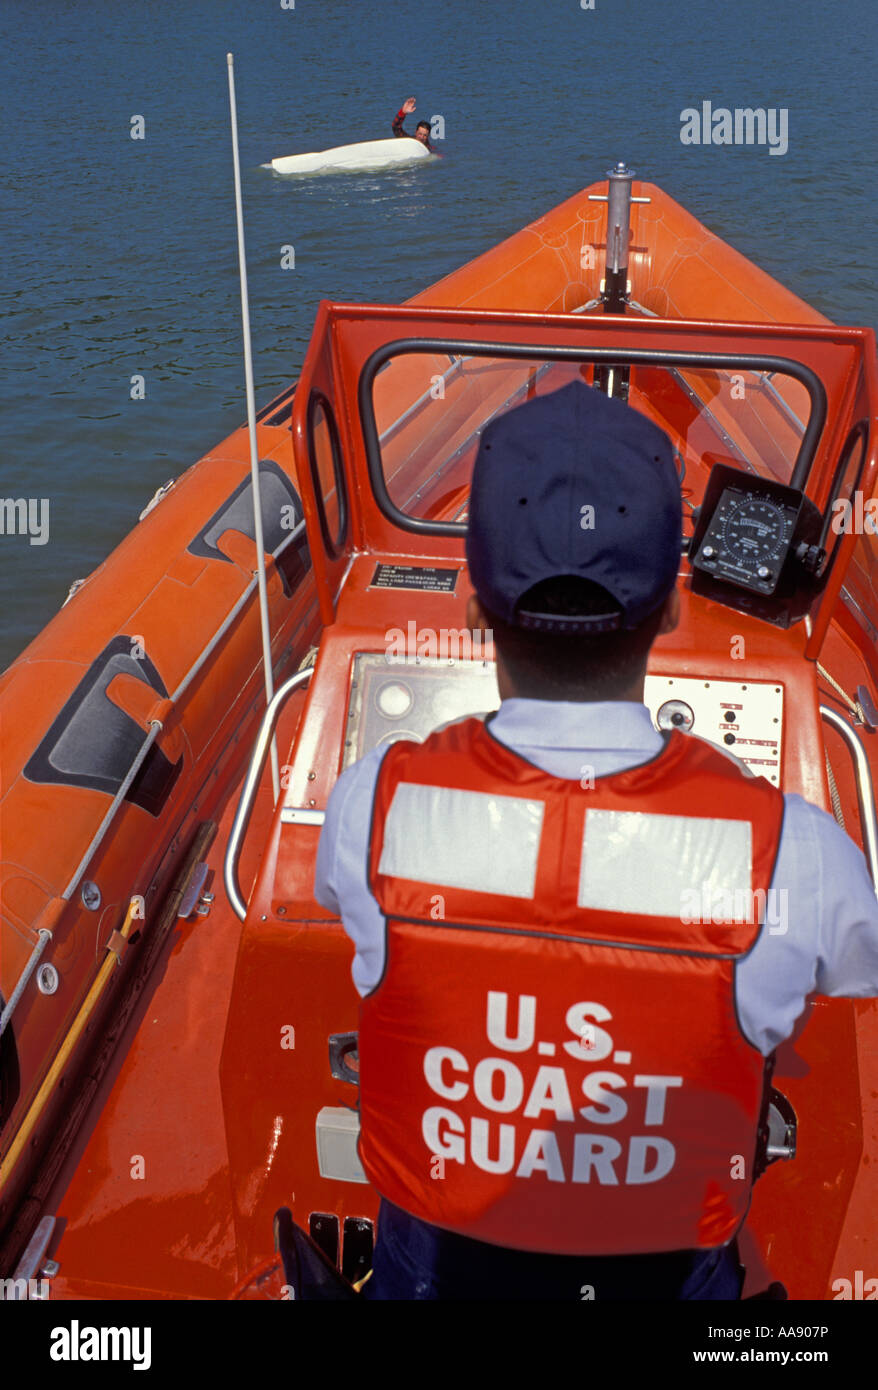 U S Coast Guard officer rescues a boater from an overturned water craft near Miami Florida Stock Photo